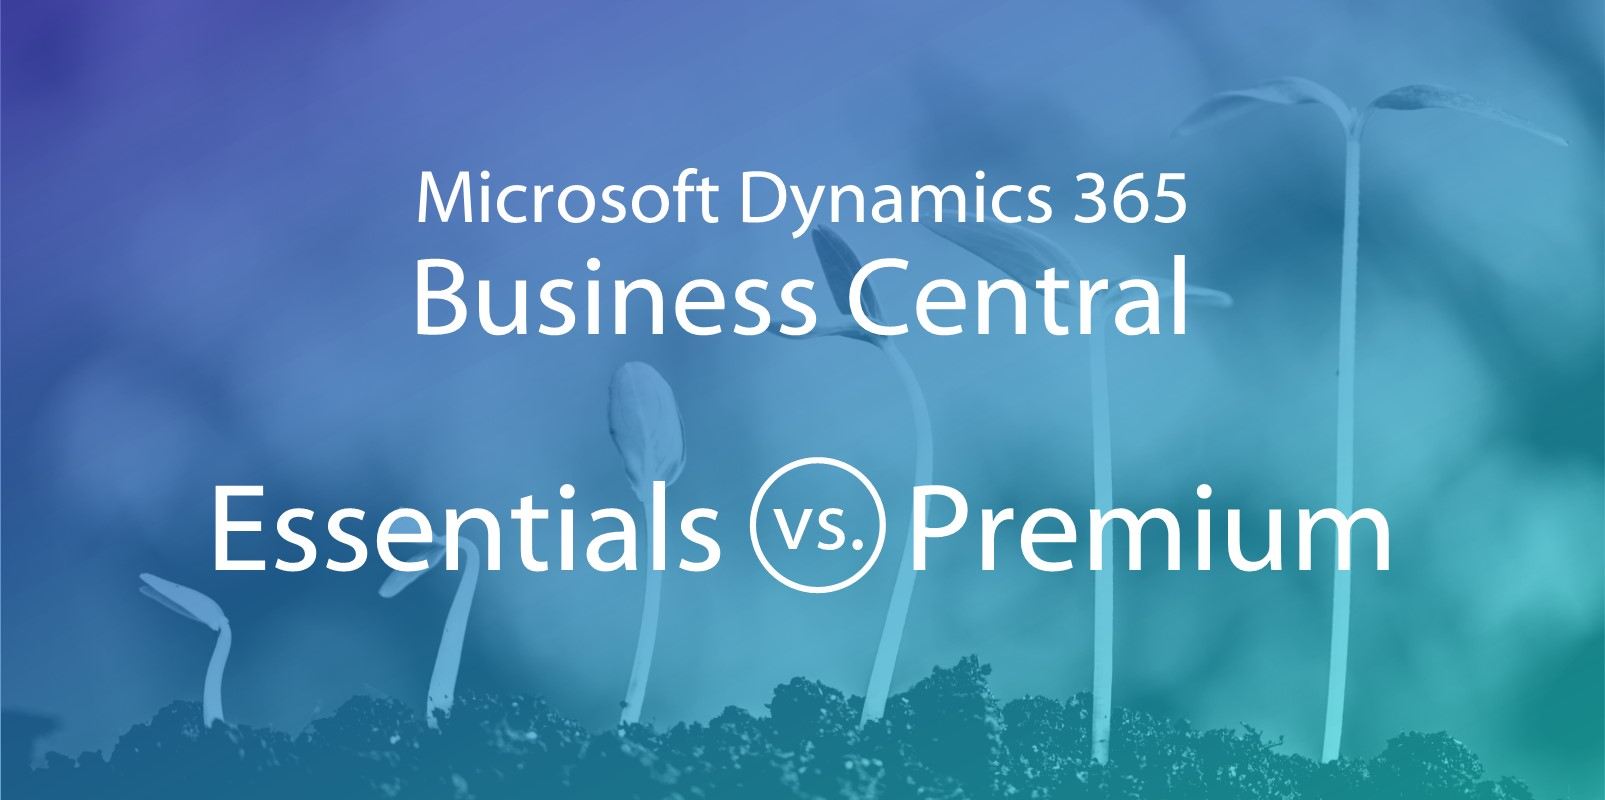 Microsoft Dynamics 365 Business Central: Essentials or Premium?